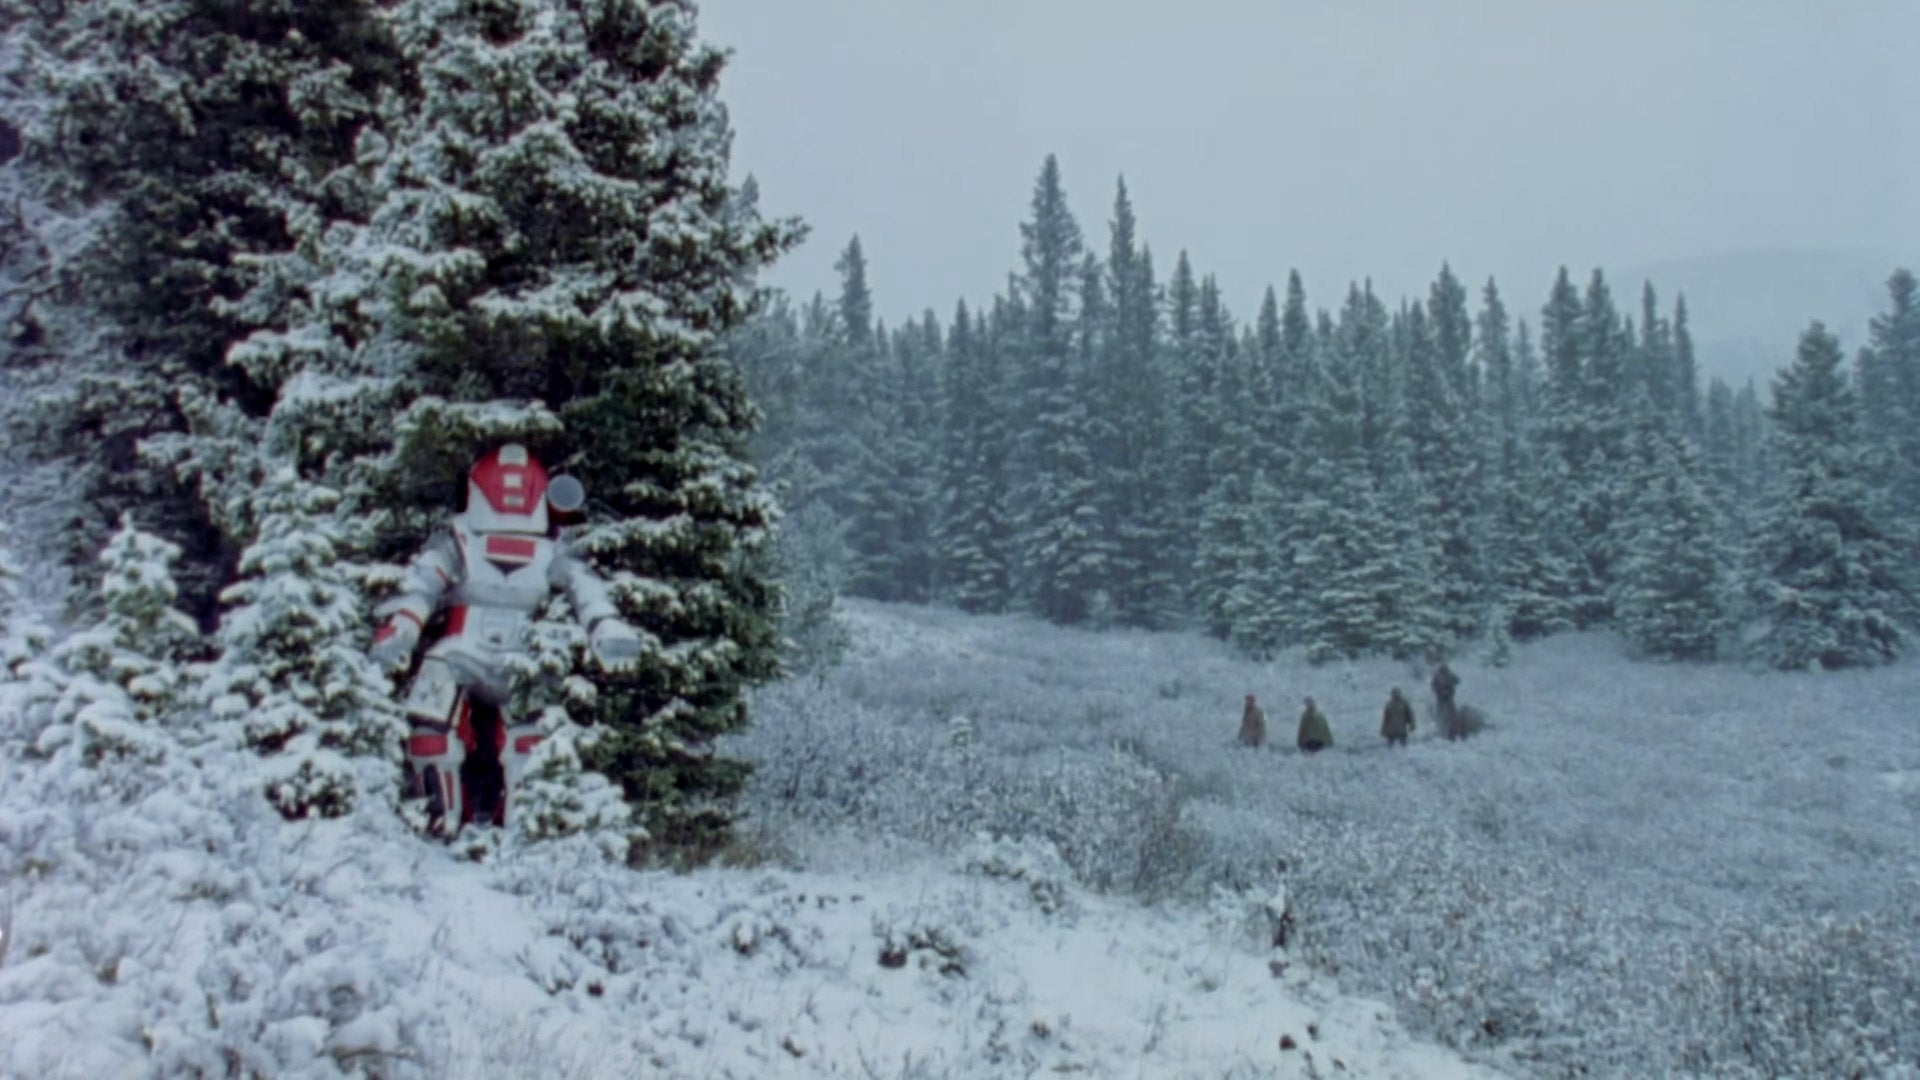 Project Grizzly suit in snow - Adsum